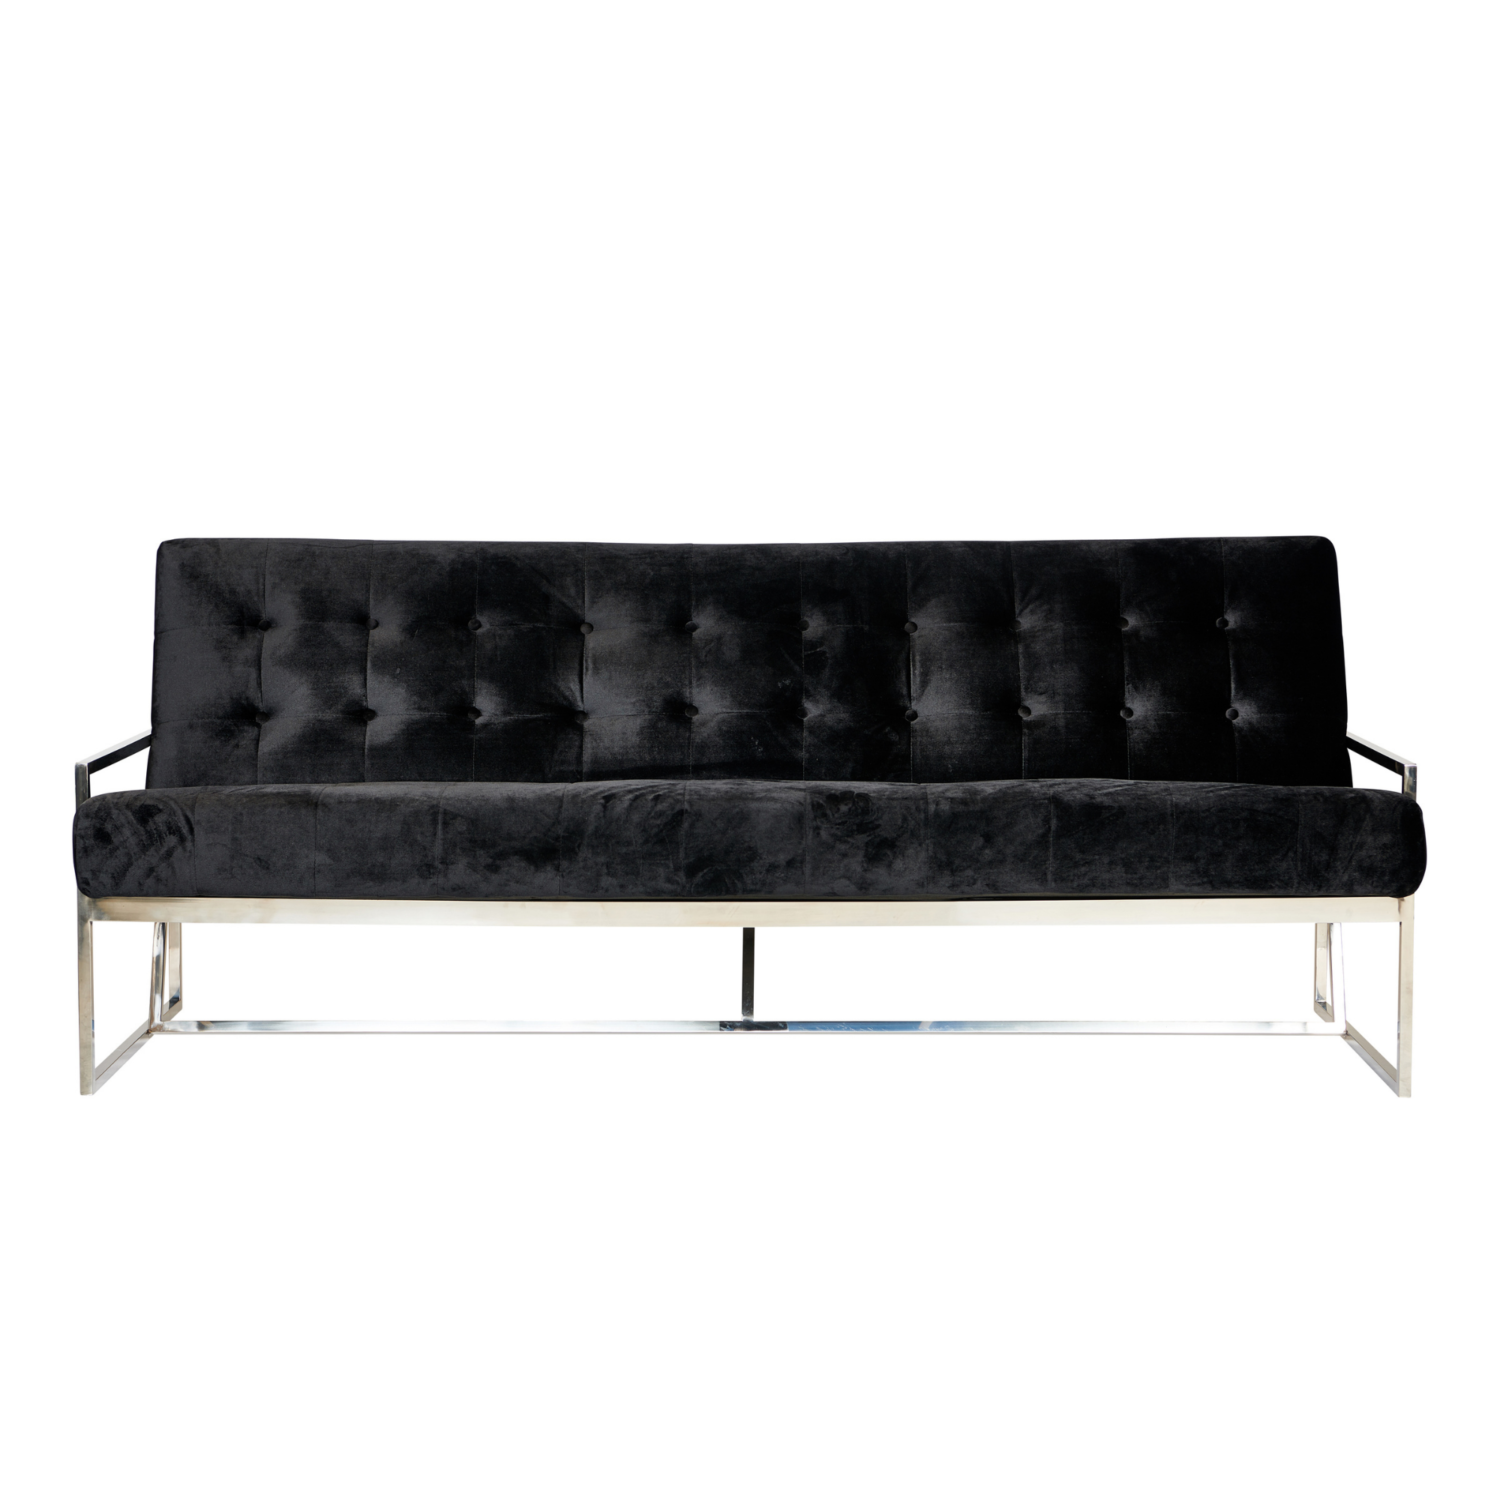 Starlet Three Seater Sofa - Black / Silver Frame - Event Artillery